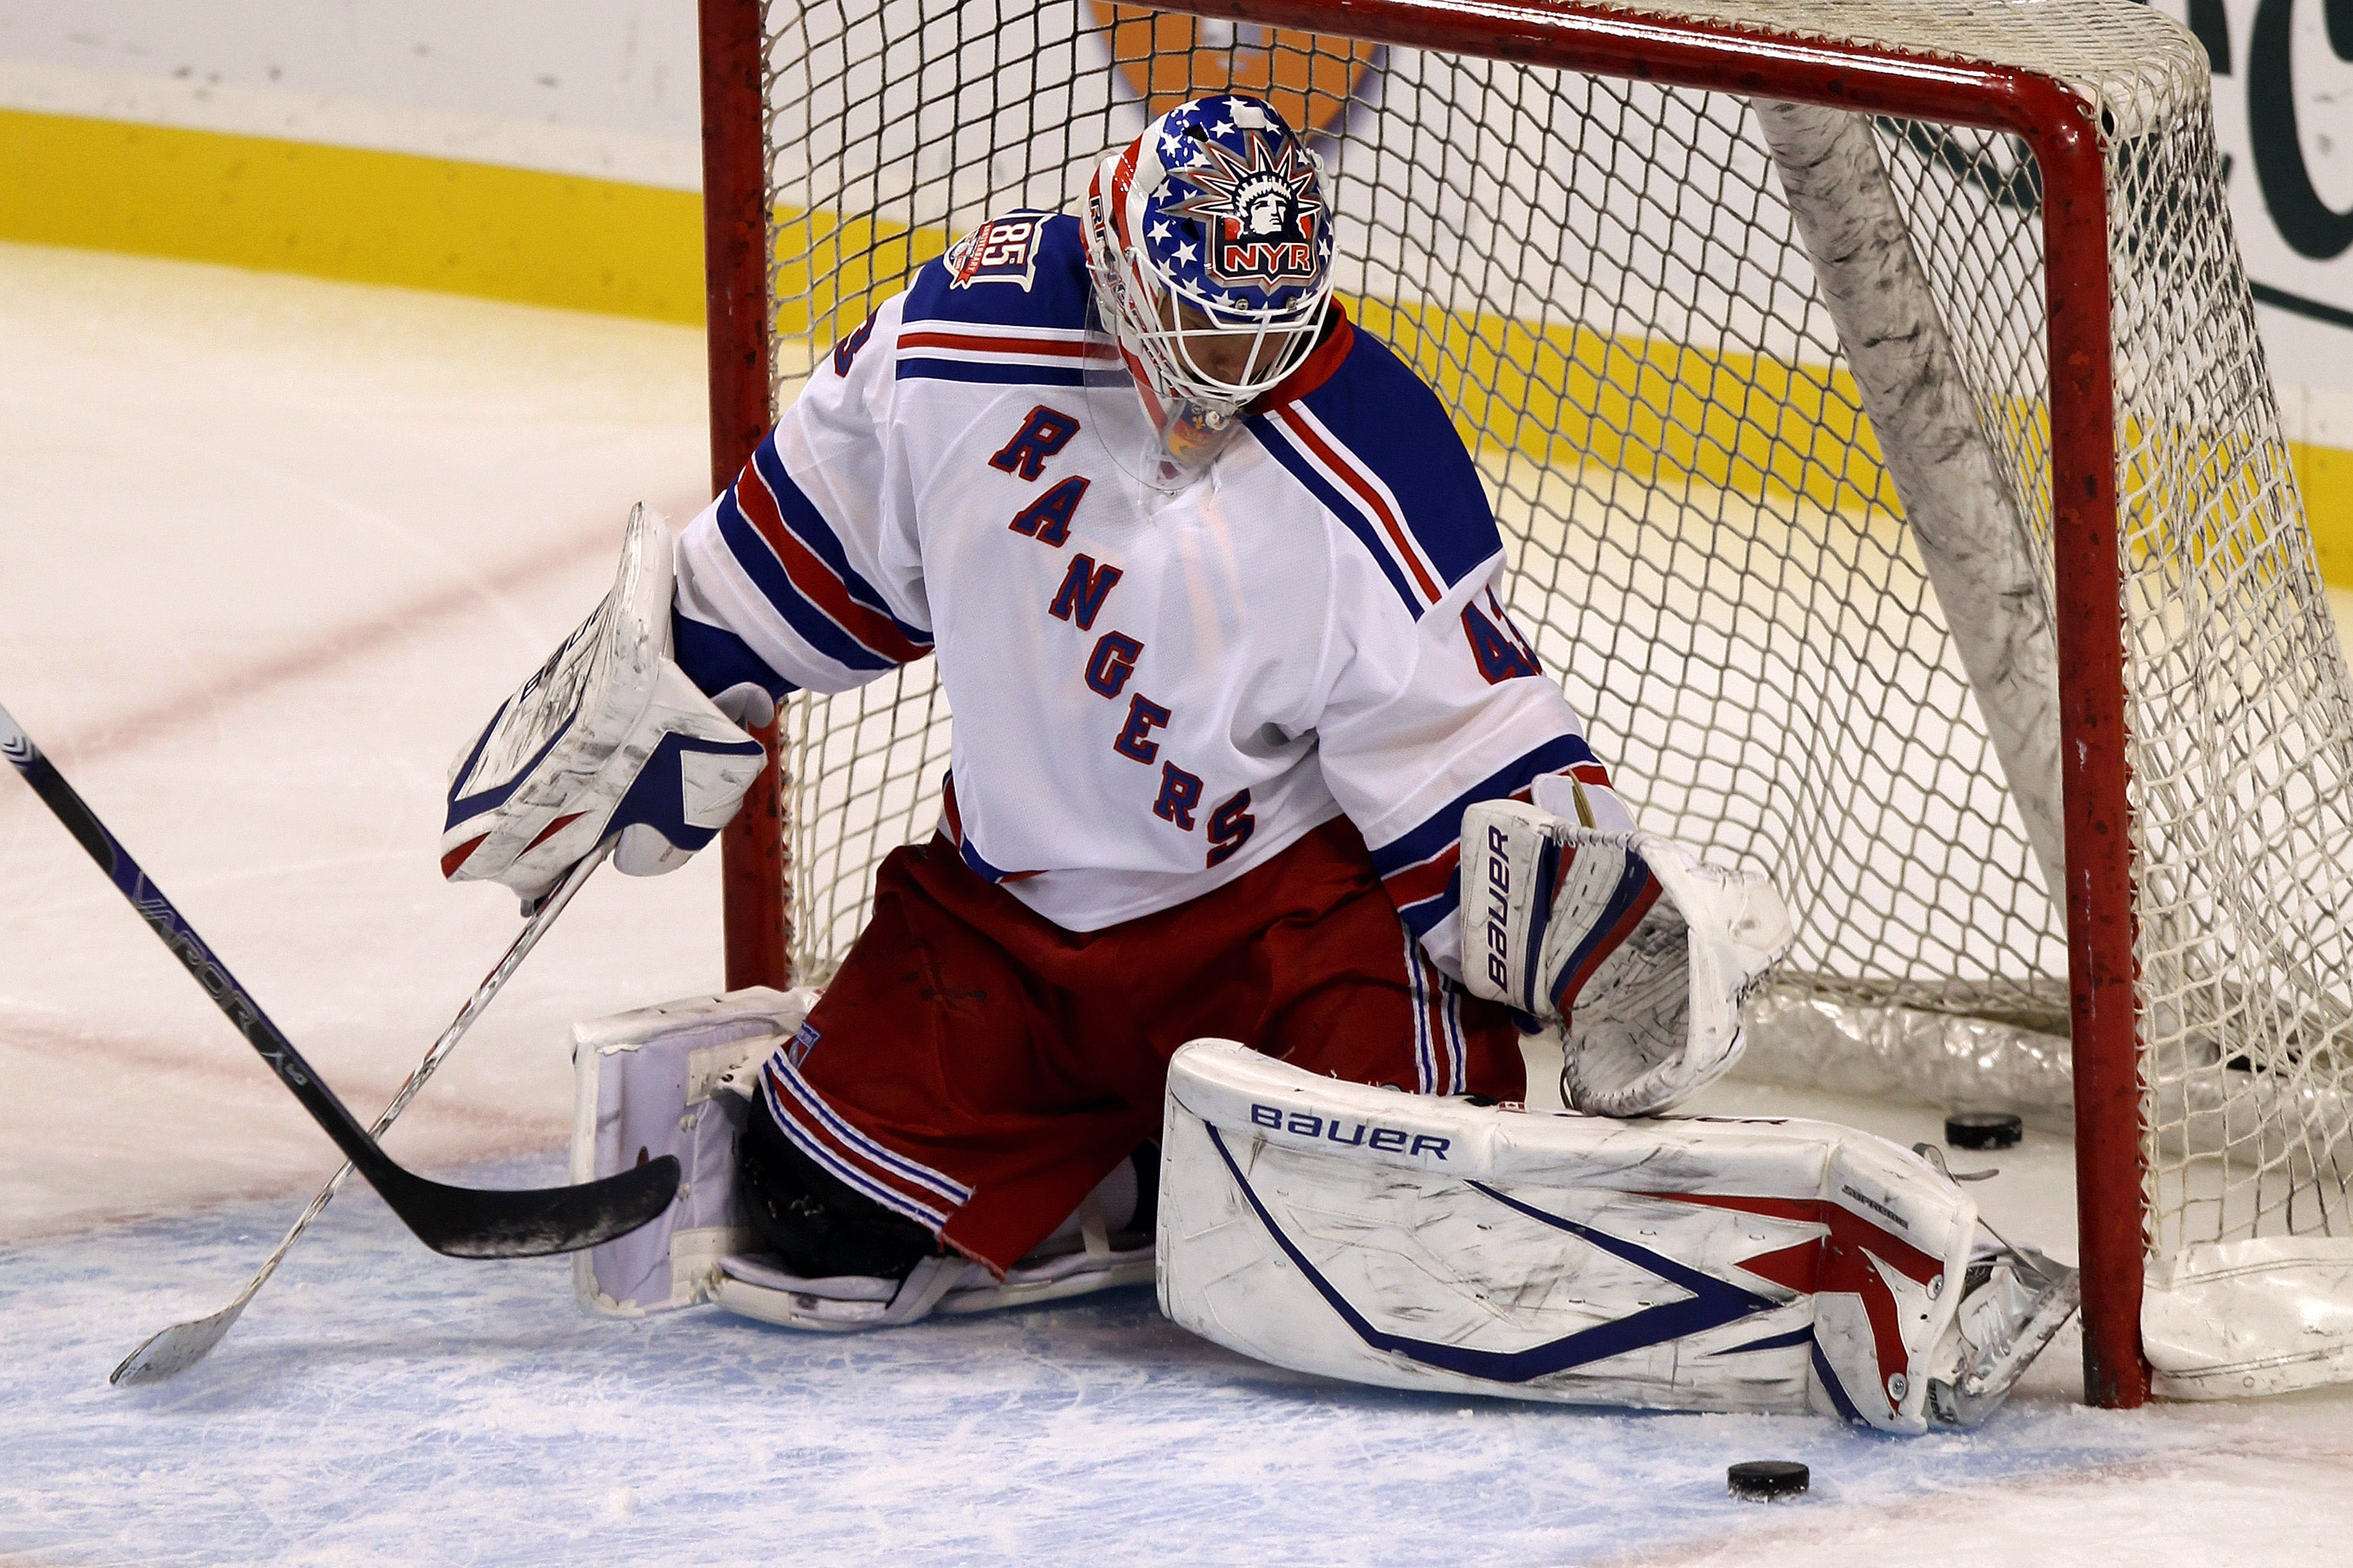 BOSTON - OCTOBER 23:  Martin Biron #43 of the New York Rangers skates during warmups before the game against the Boston Bruins at the TD Garden on October 23, 2010 in Boston, Massachusetts.  The Rangers won 3-2.  (Photo by Bruce Bennett/Getty Images)